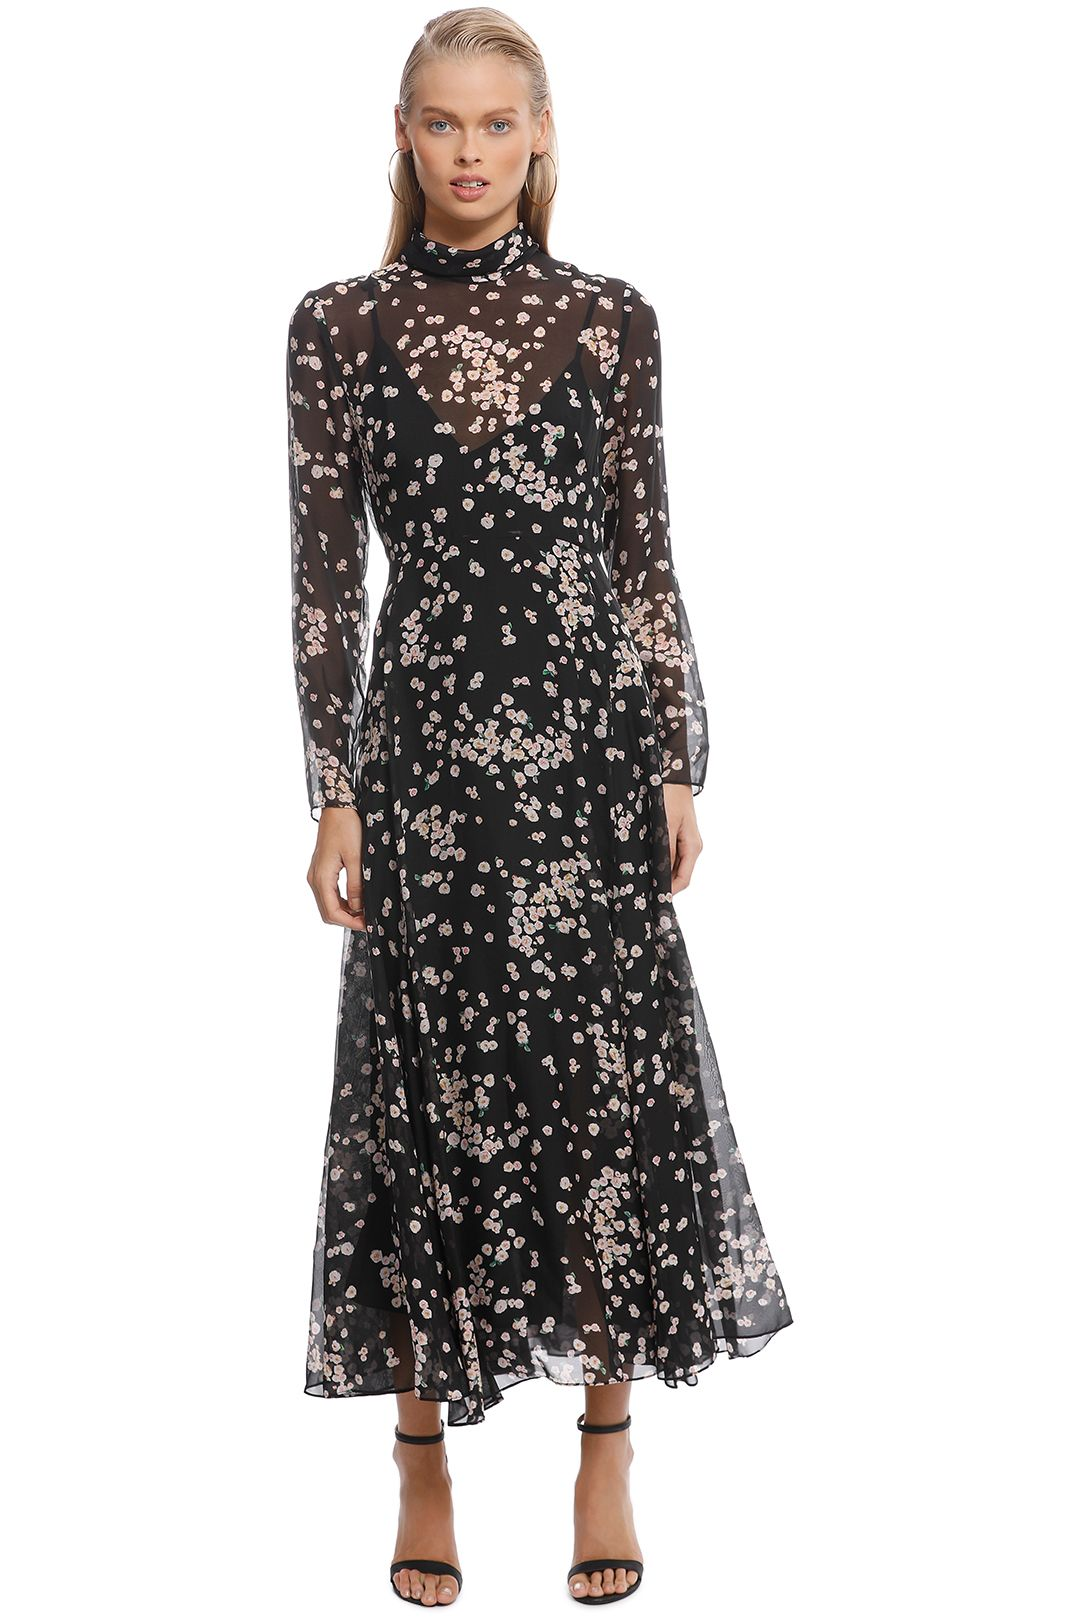 Camilla and Marc - Gardin Dress - Black Floral - Front